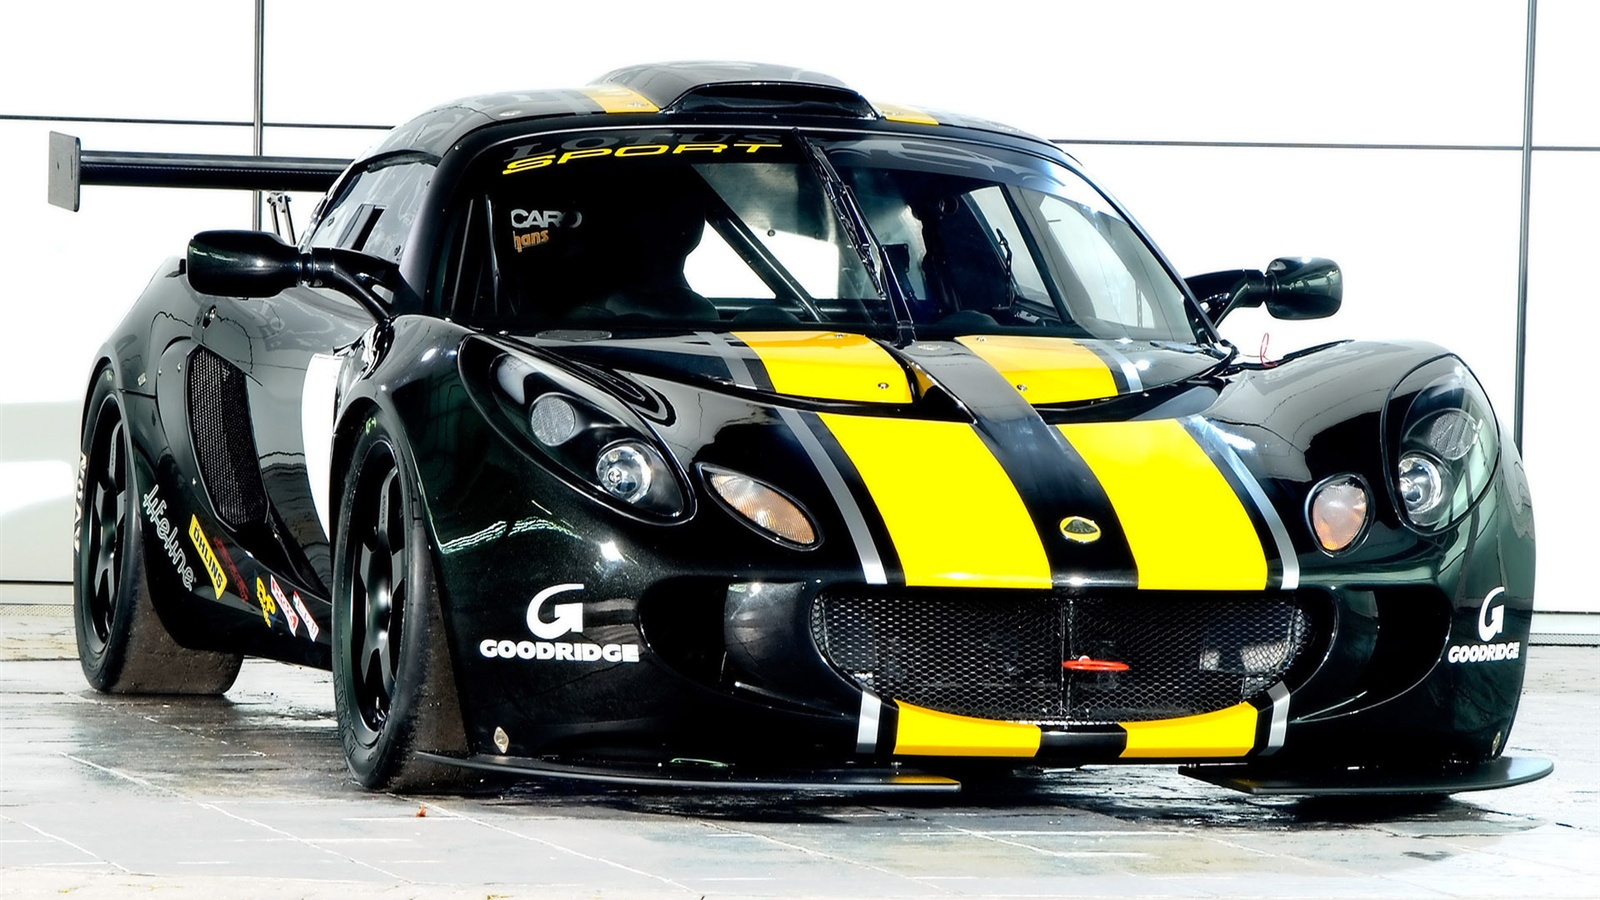 wallpaper lotus sports car 1920x1200 hd picture image